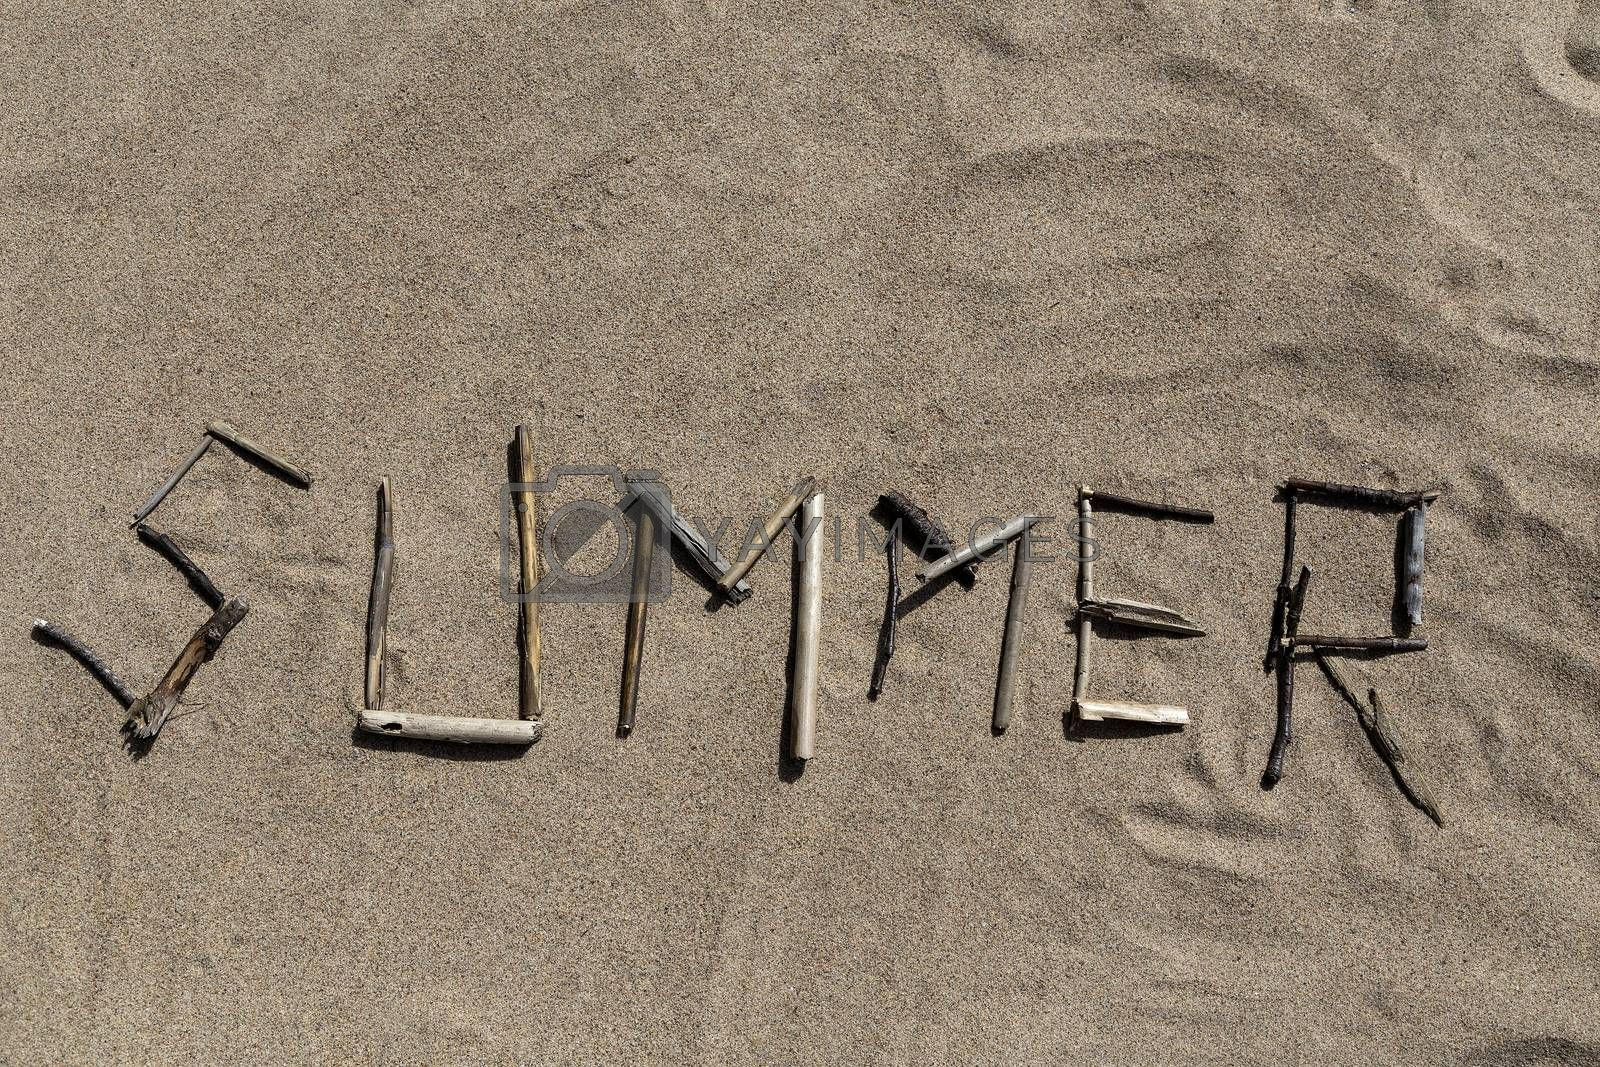 A set of sticks in a sandy beach forming the word Summer